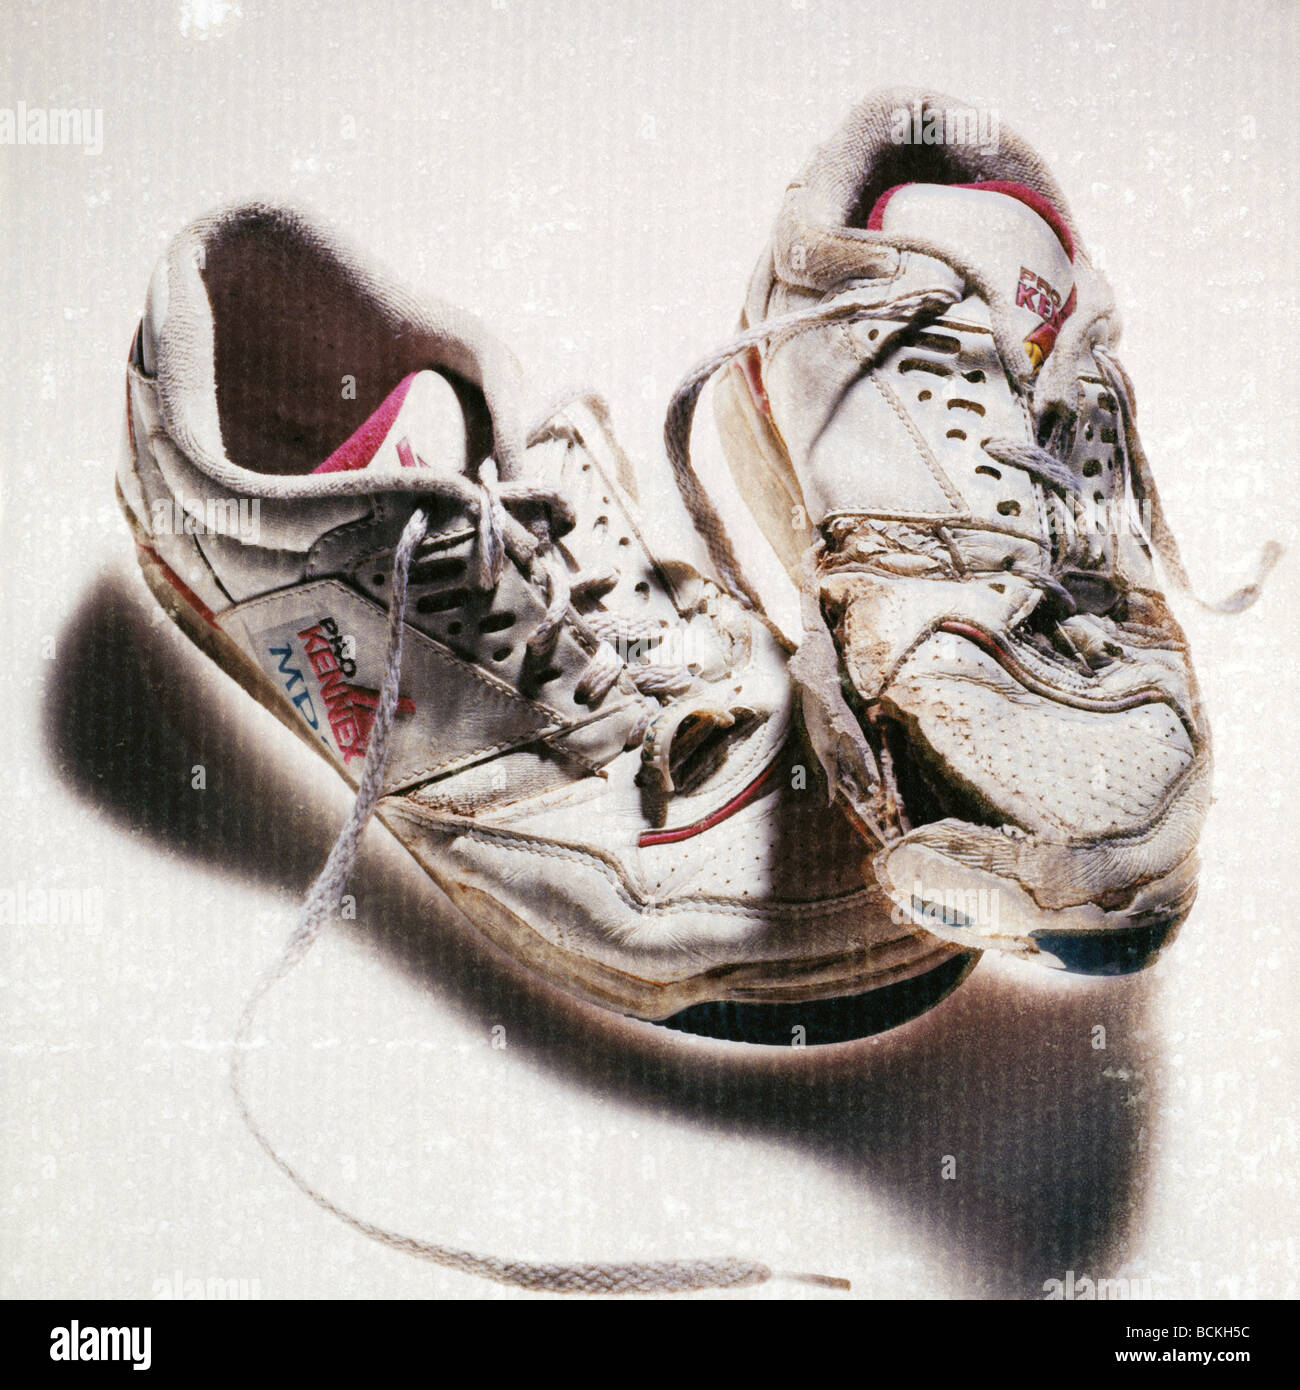 Worn out tennis shoes - Stock Image